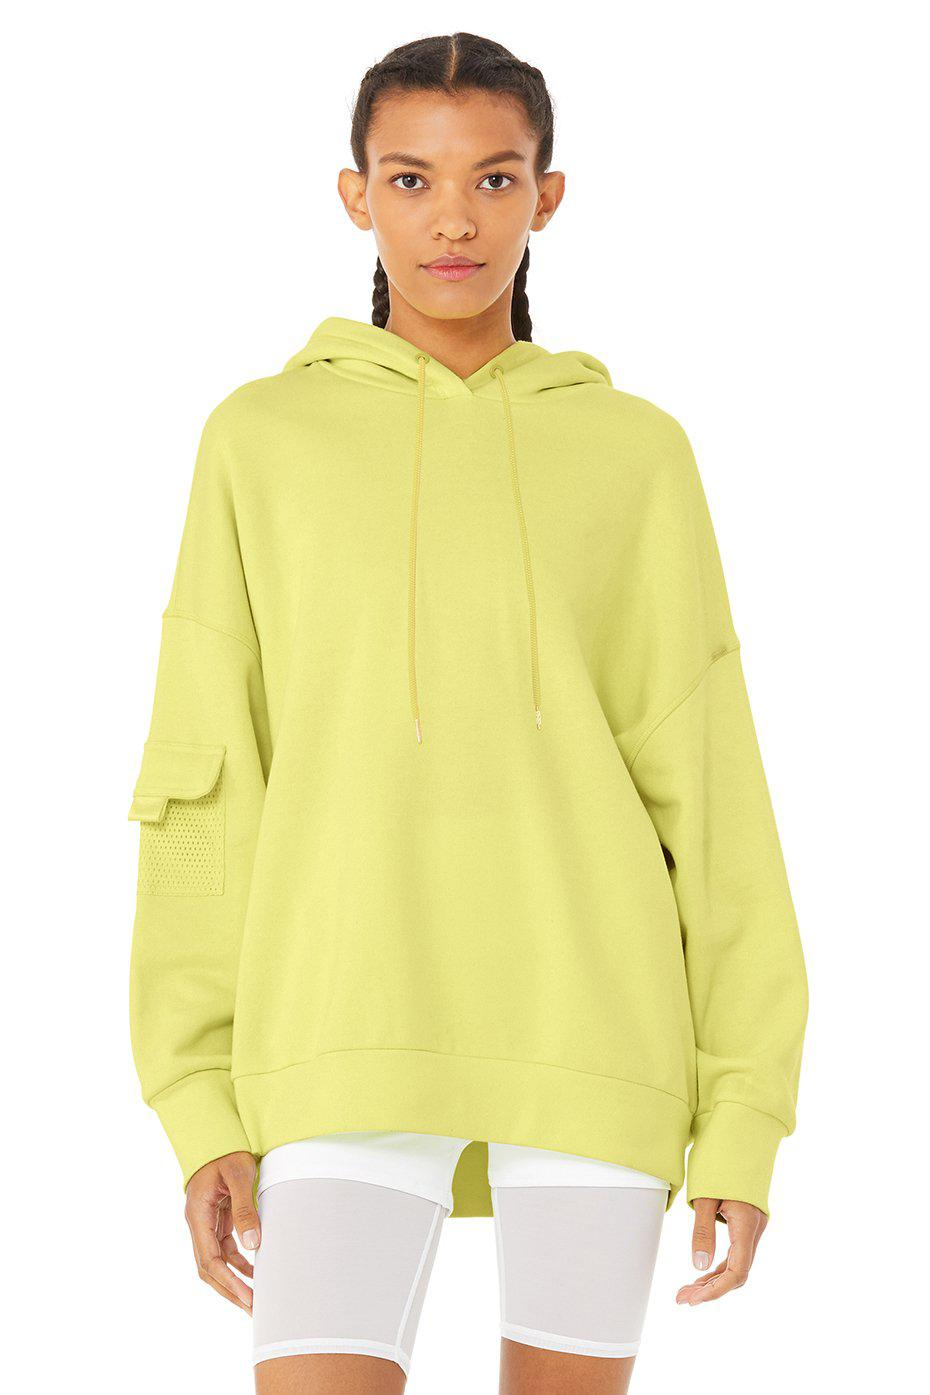 At Ease Hoodie - Neon Shock Yellow